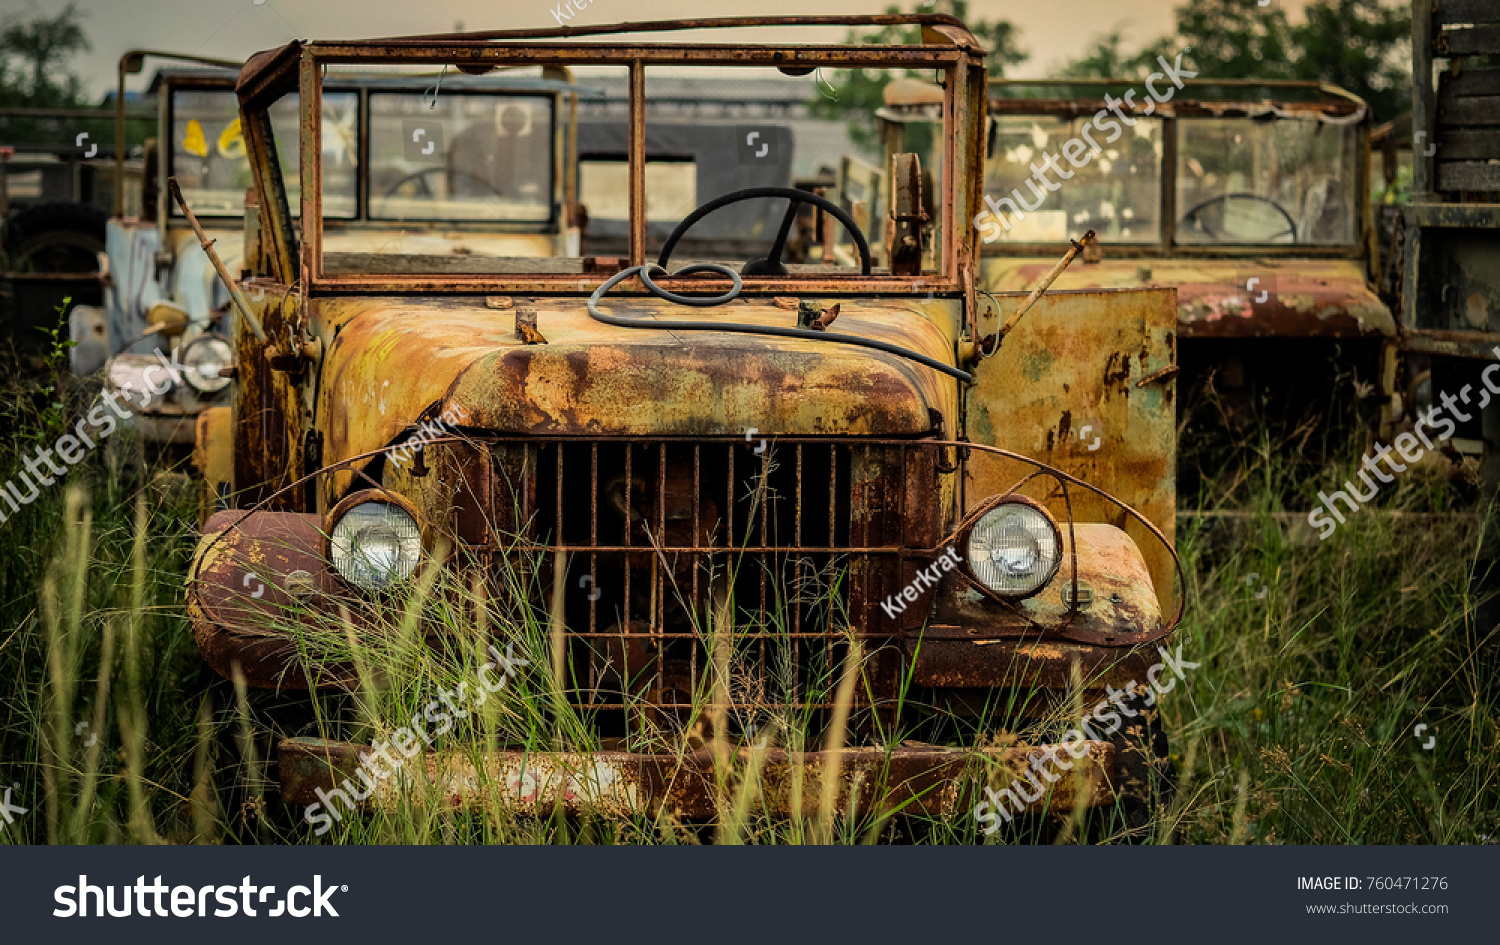 Old Rusty Trucks Junkyard Background Stock Photo & Image (Royalty ...